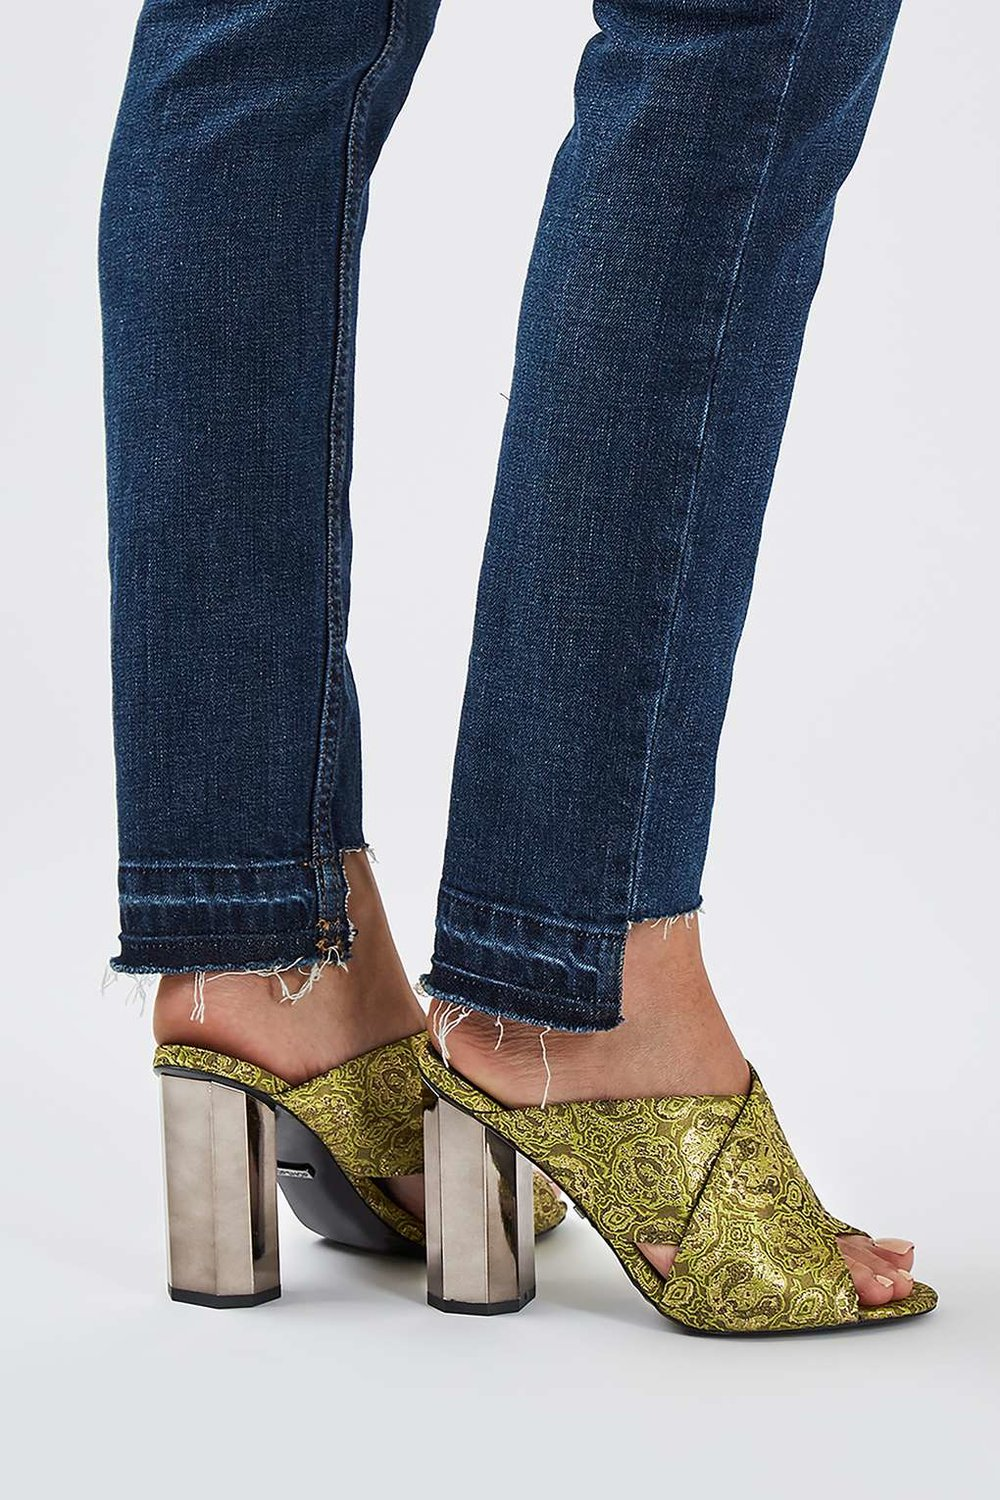 RAZZMATAZZ Facet Mules / Topshop / $45  These are a work of art and that HEEL